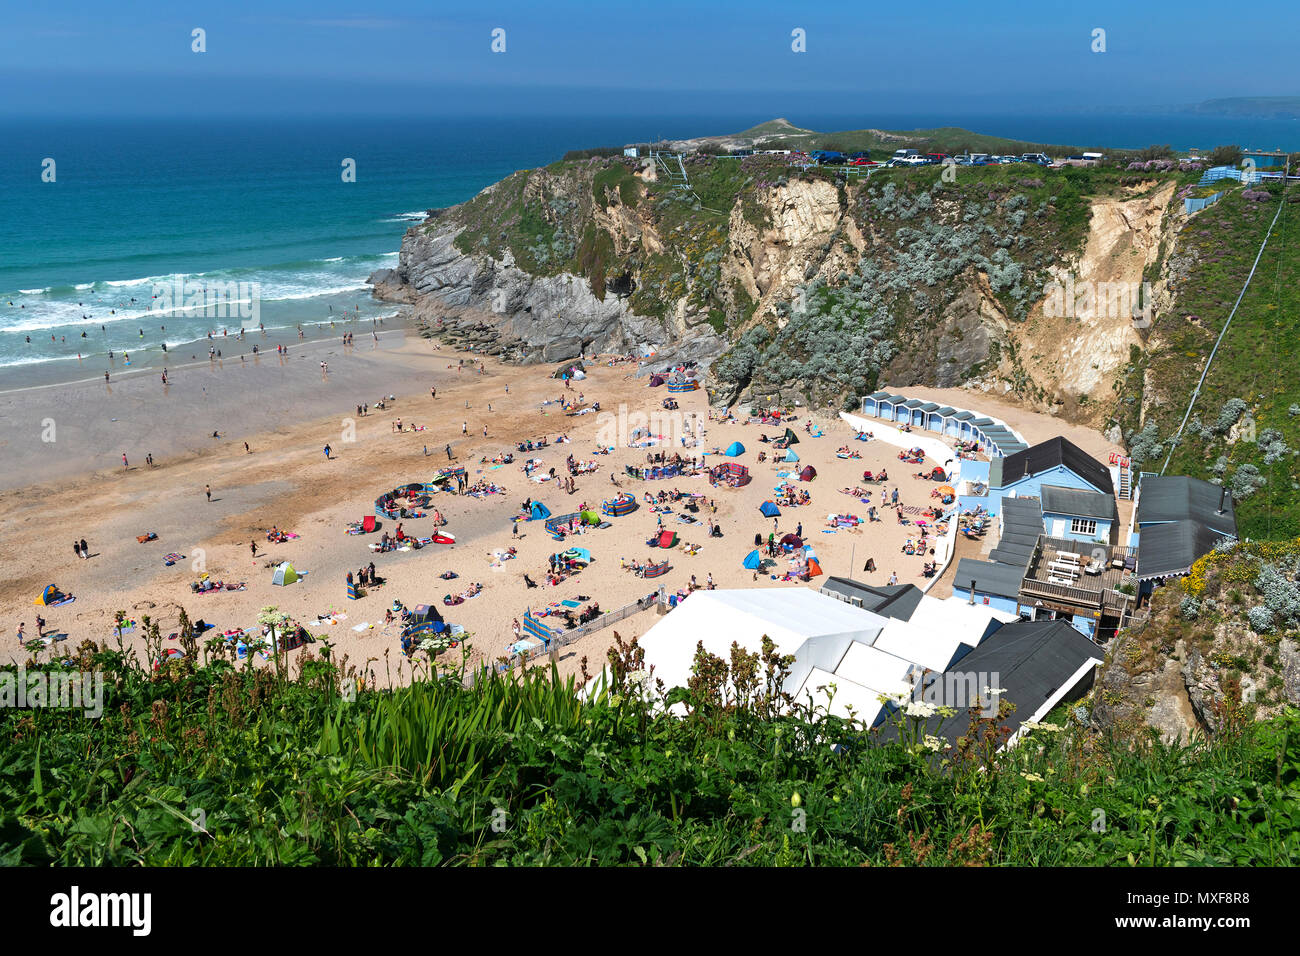 early summer at lusty glaze beach, newquay, cornwall, england, britain, uk, - Stock Image